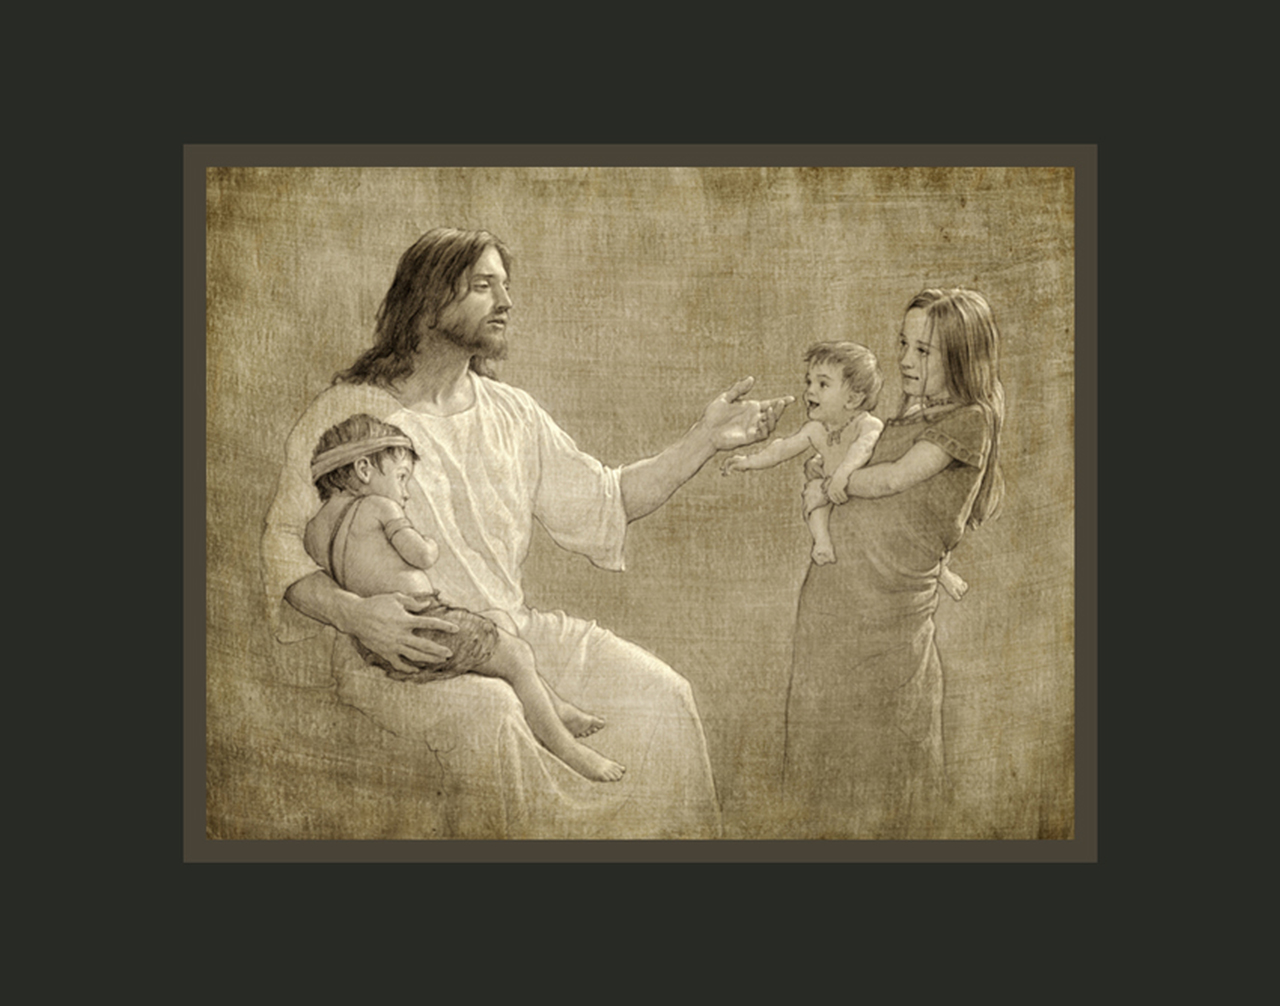 AF -11×14 Print - Christ with Children / 11x14 matted/Joseph Brickey<BR>キリストと子供たち 11×14 マットプリント